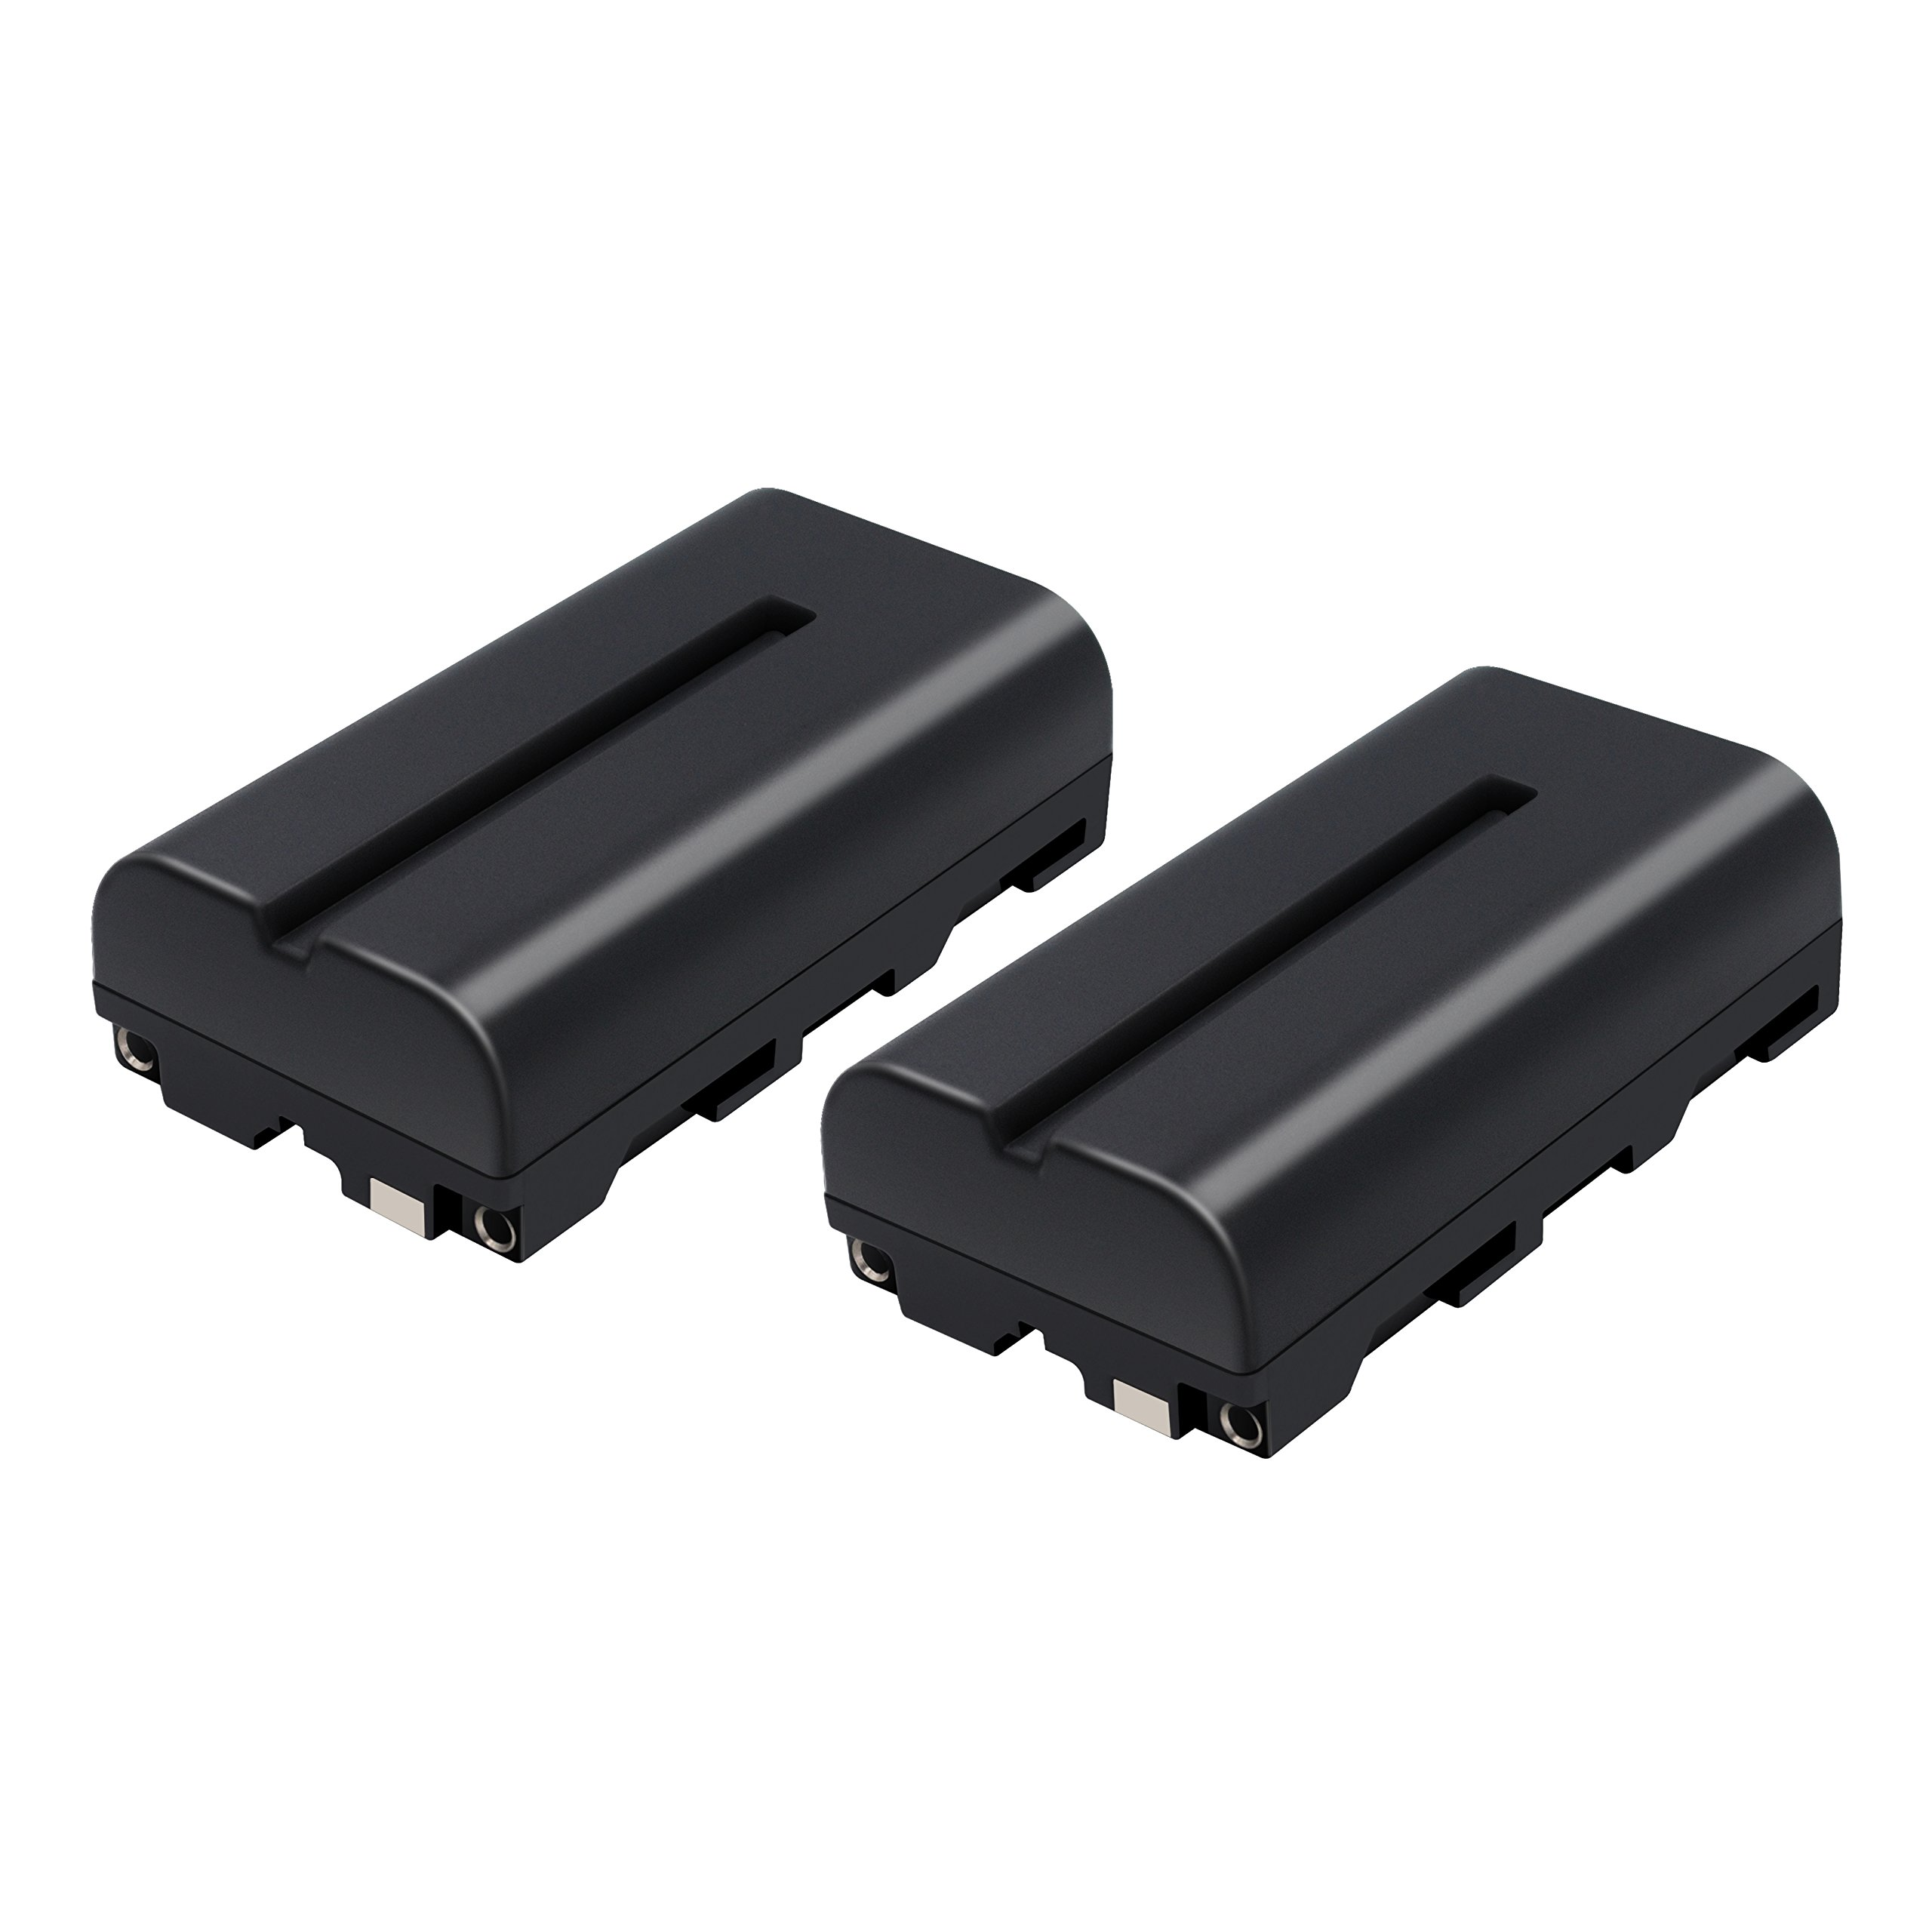 TURPOW NP-F550 NP-F570 NP-F530 NP-F330 Battery [ 2 Pack, 2900mAh ] Compatible with Sony CCD-RV100 CCD-RV200 CCD-SC5 CCD-SC6 CCD-SC55 CCD-SC65 CCD-TRV66 CCD-TRV67 DCM-M1 DCR-SC100 LED Video Light